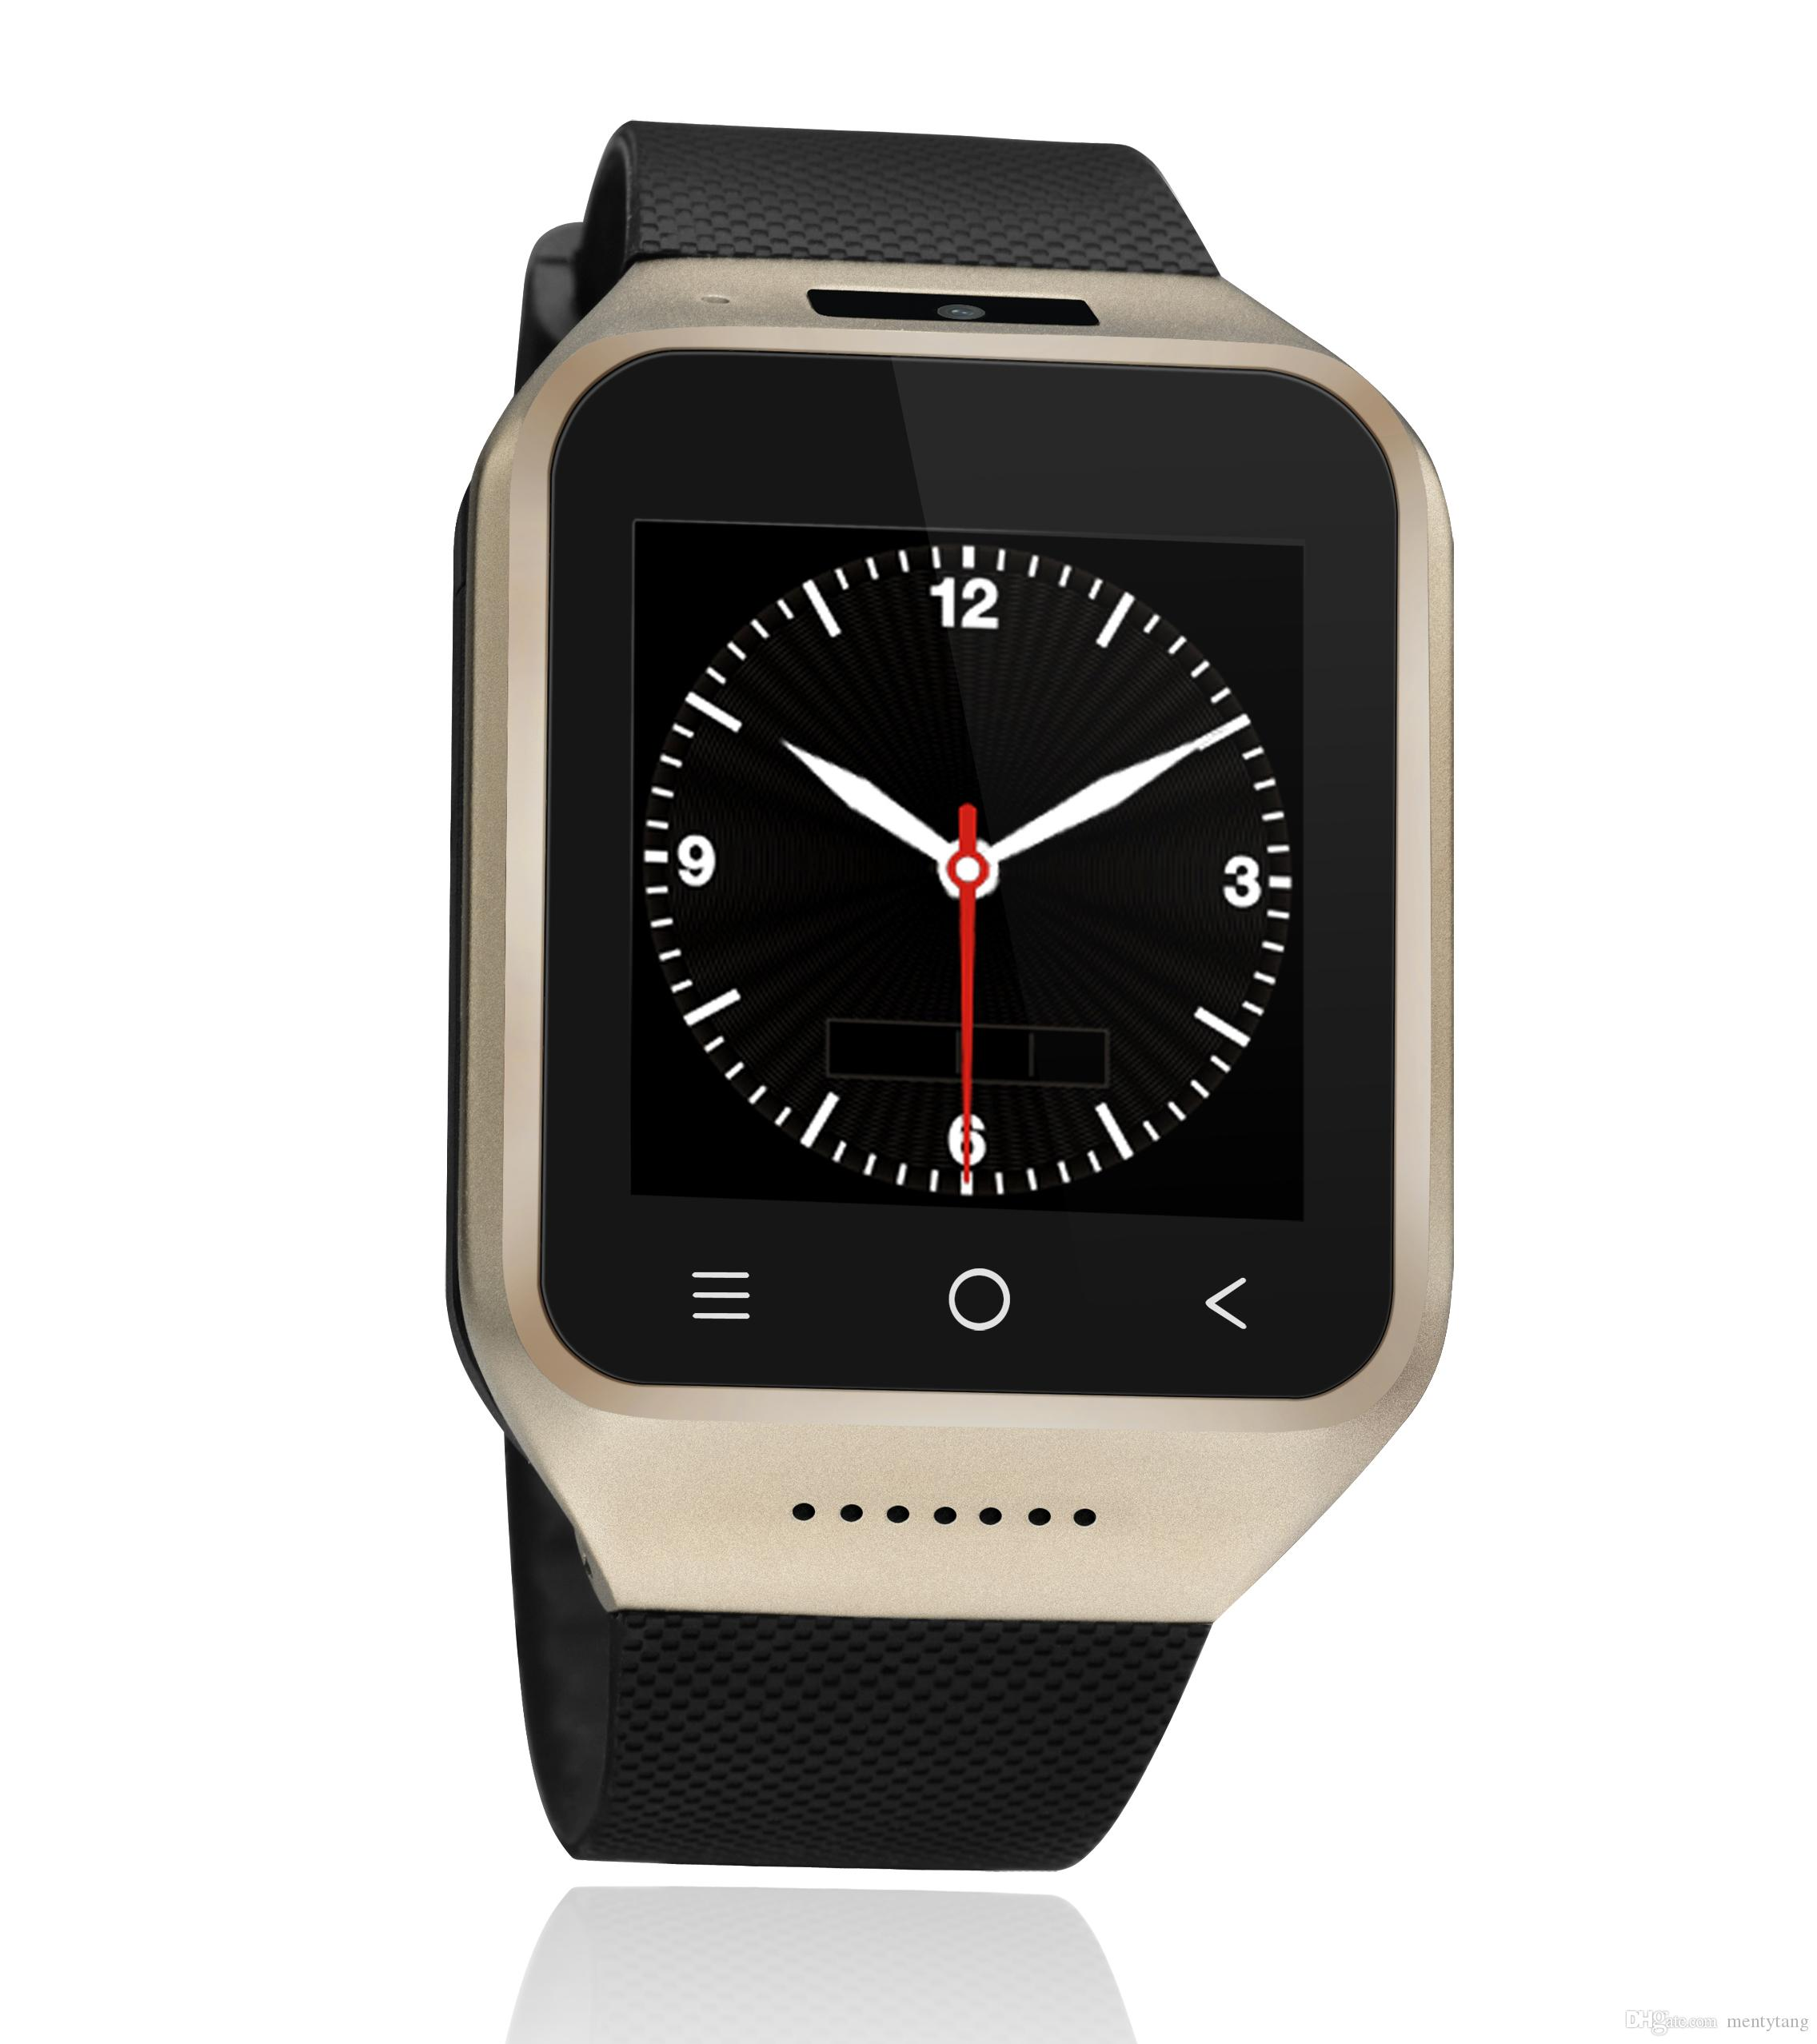 WIFI Watch;ZGPAX S8 1.5 Inch Android 4.4 3G SIM Smart Watch With 4GB ROM 2.0MP Camera Phone Watch With Email GPS WIFI